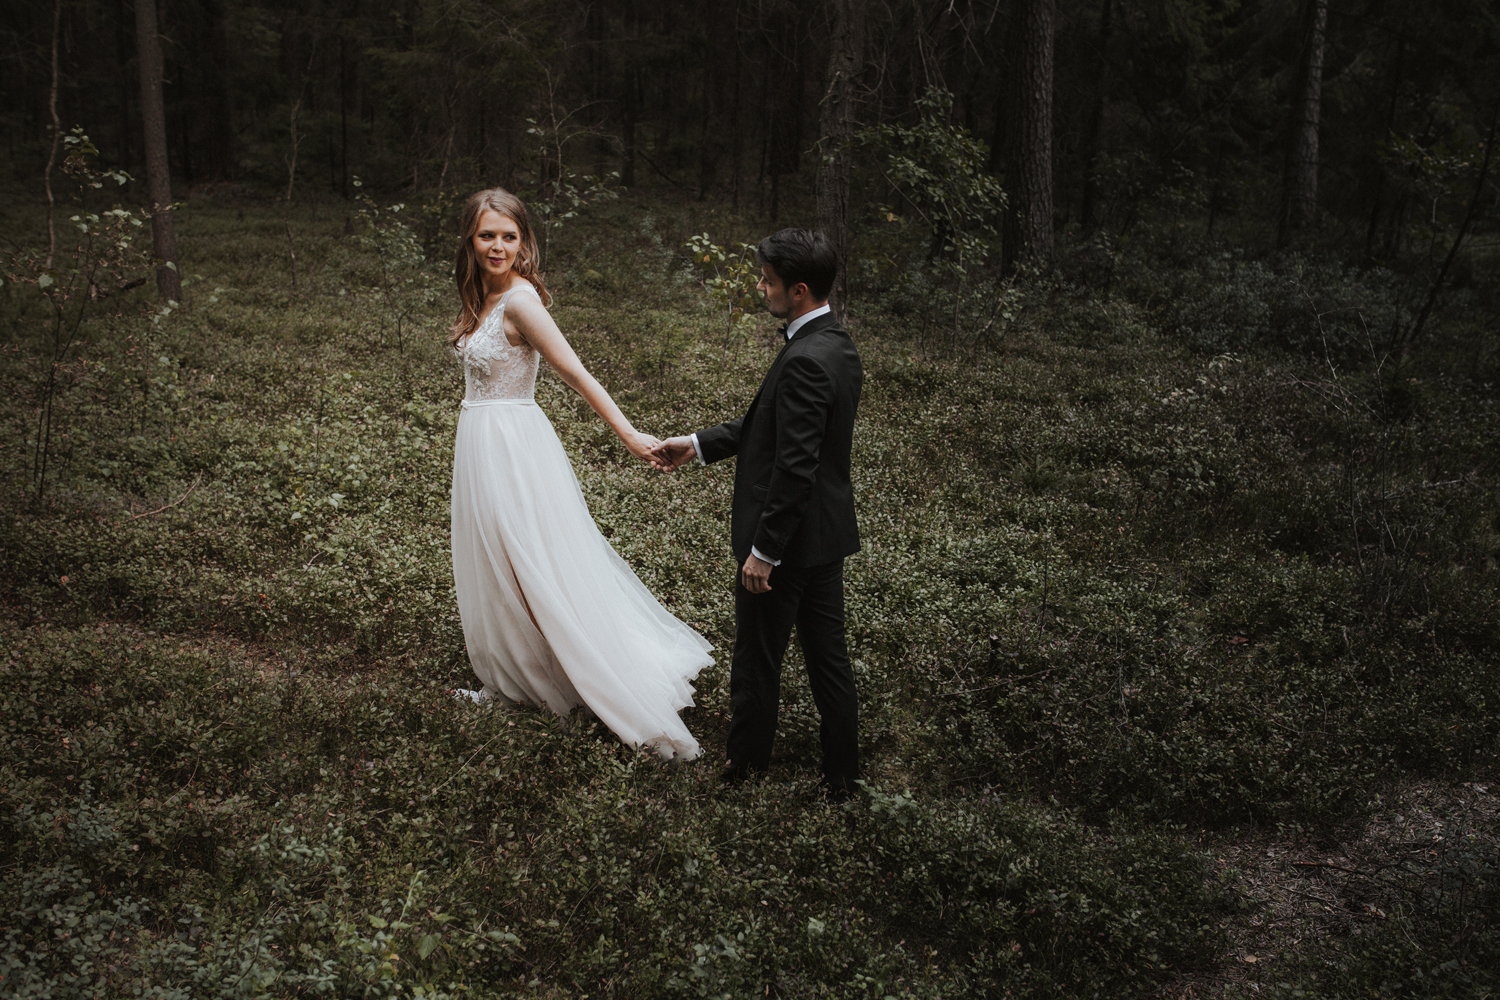 weddingphotograher_klaudia_rafal_nationalpark_487.jpg